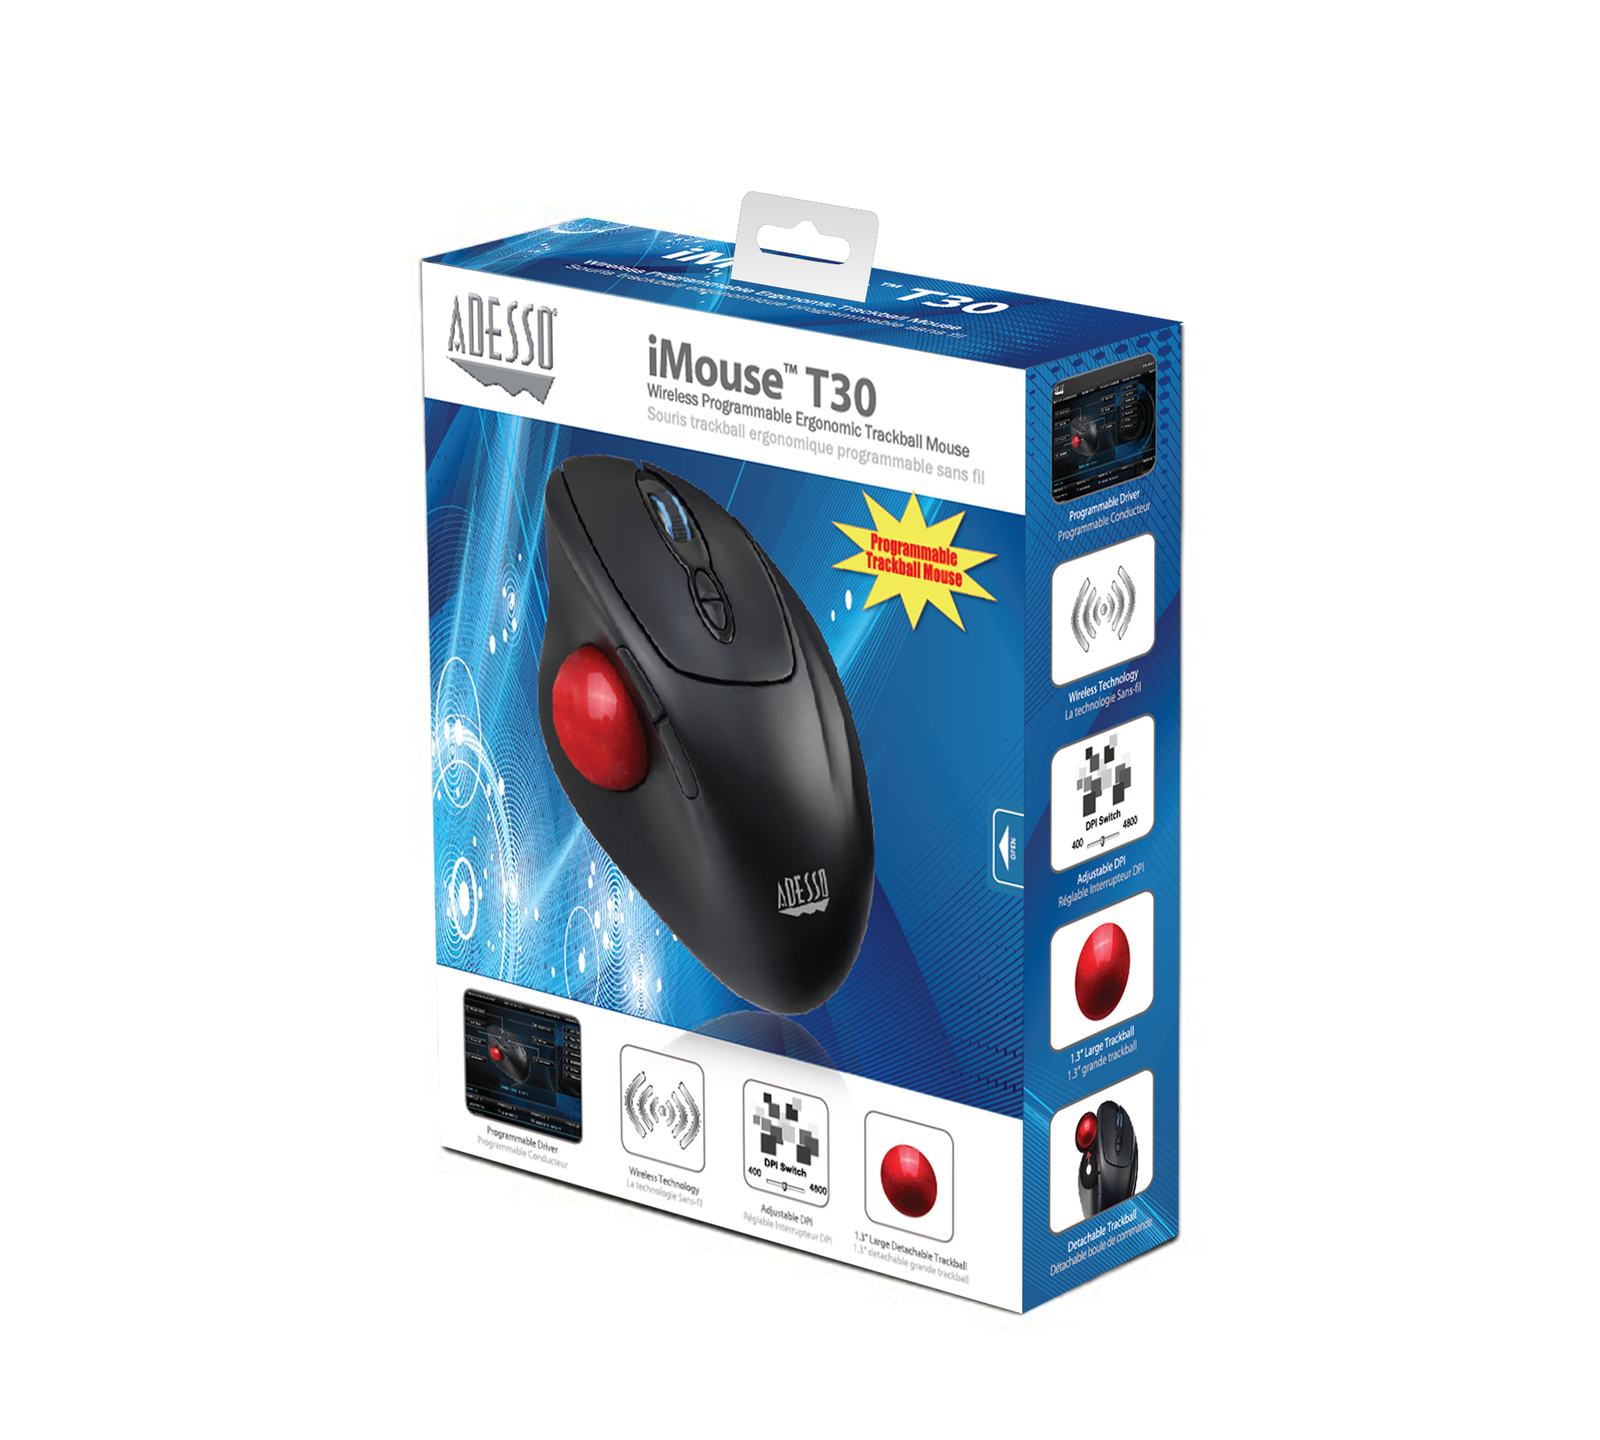 8e48abc3c88 ... Adesso: iMouse T30 – Wireless Programmable Ergonomic Trackball Mouse  image